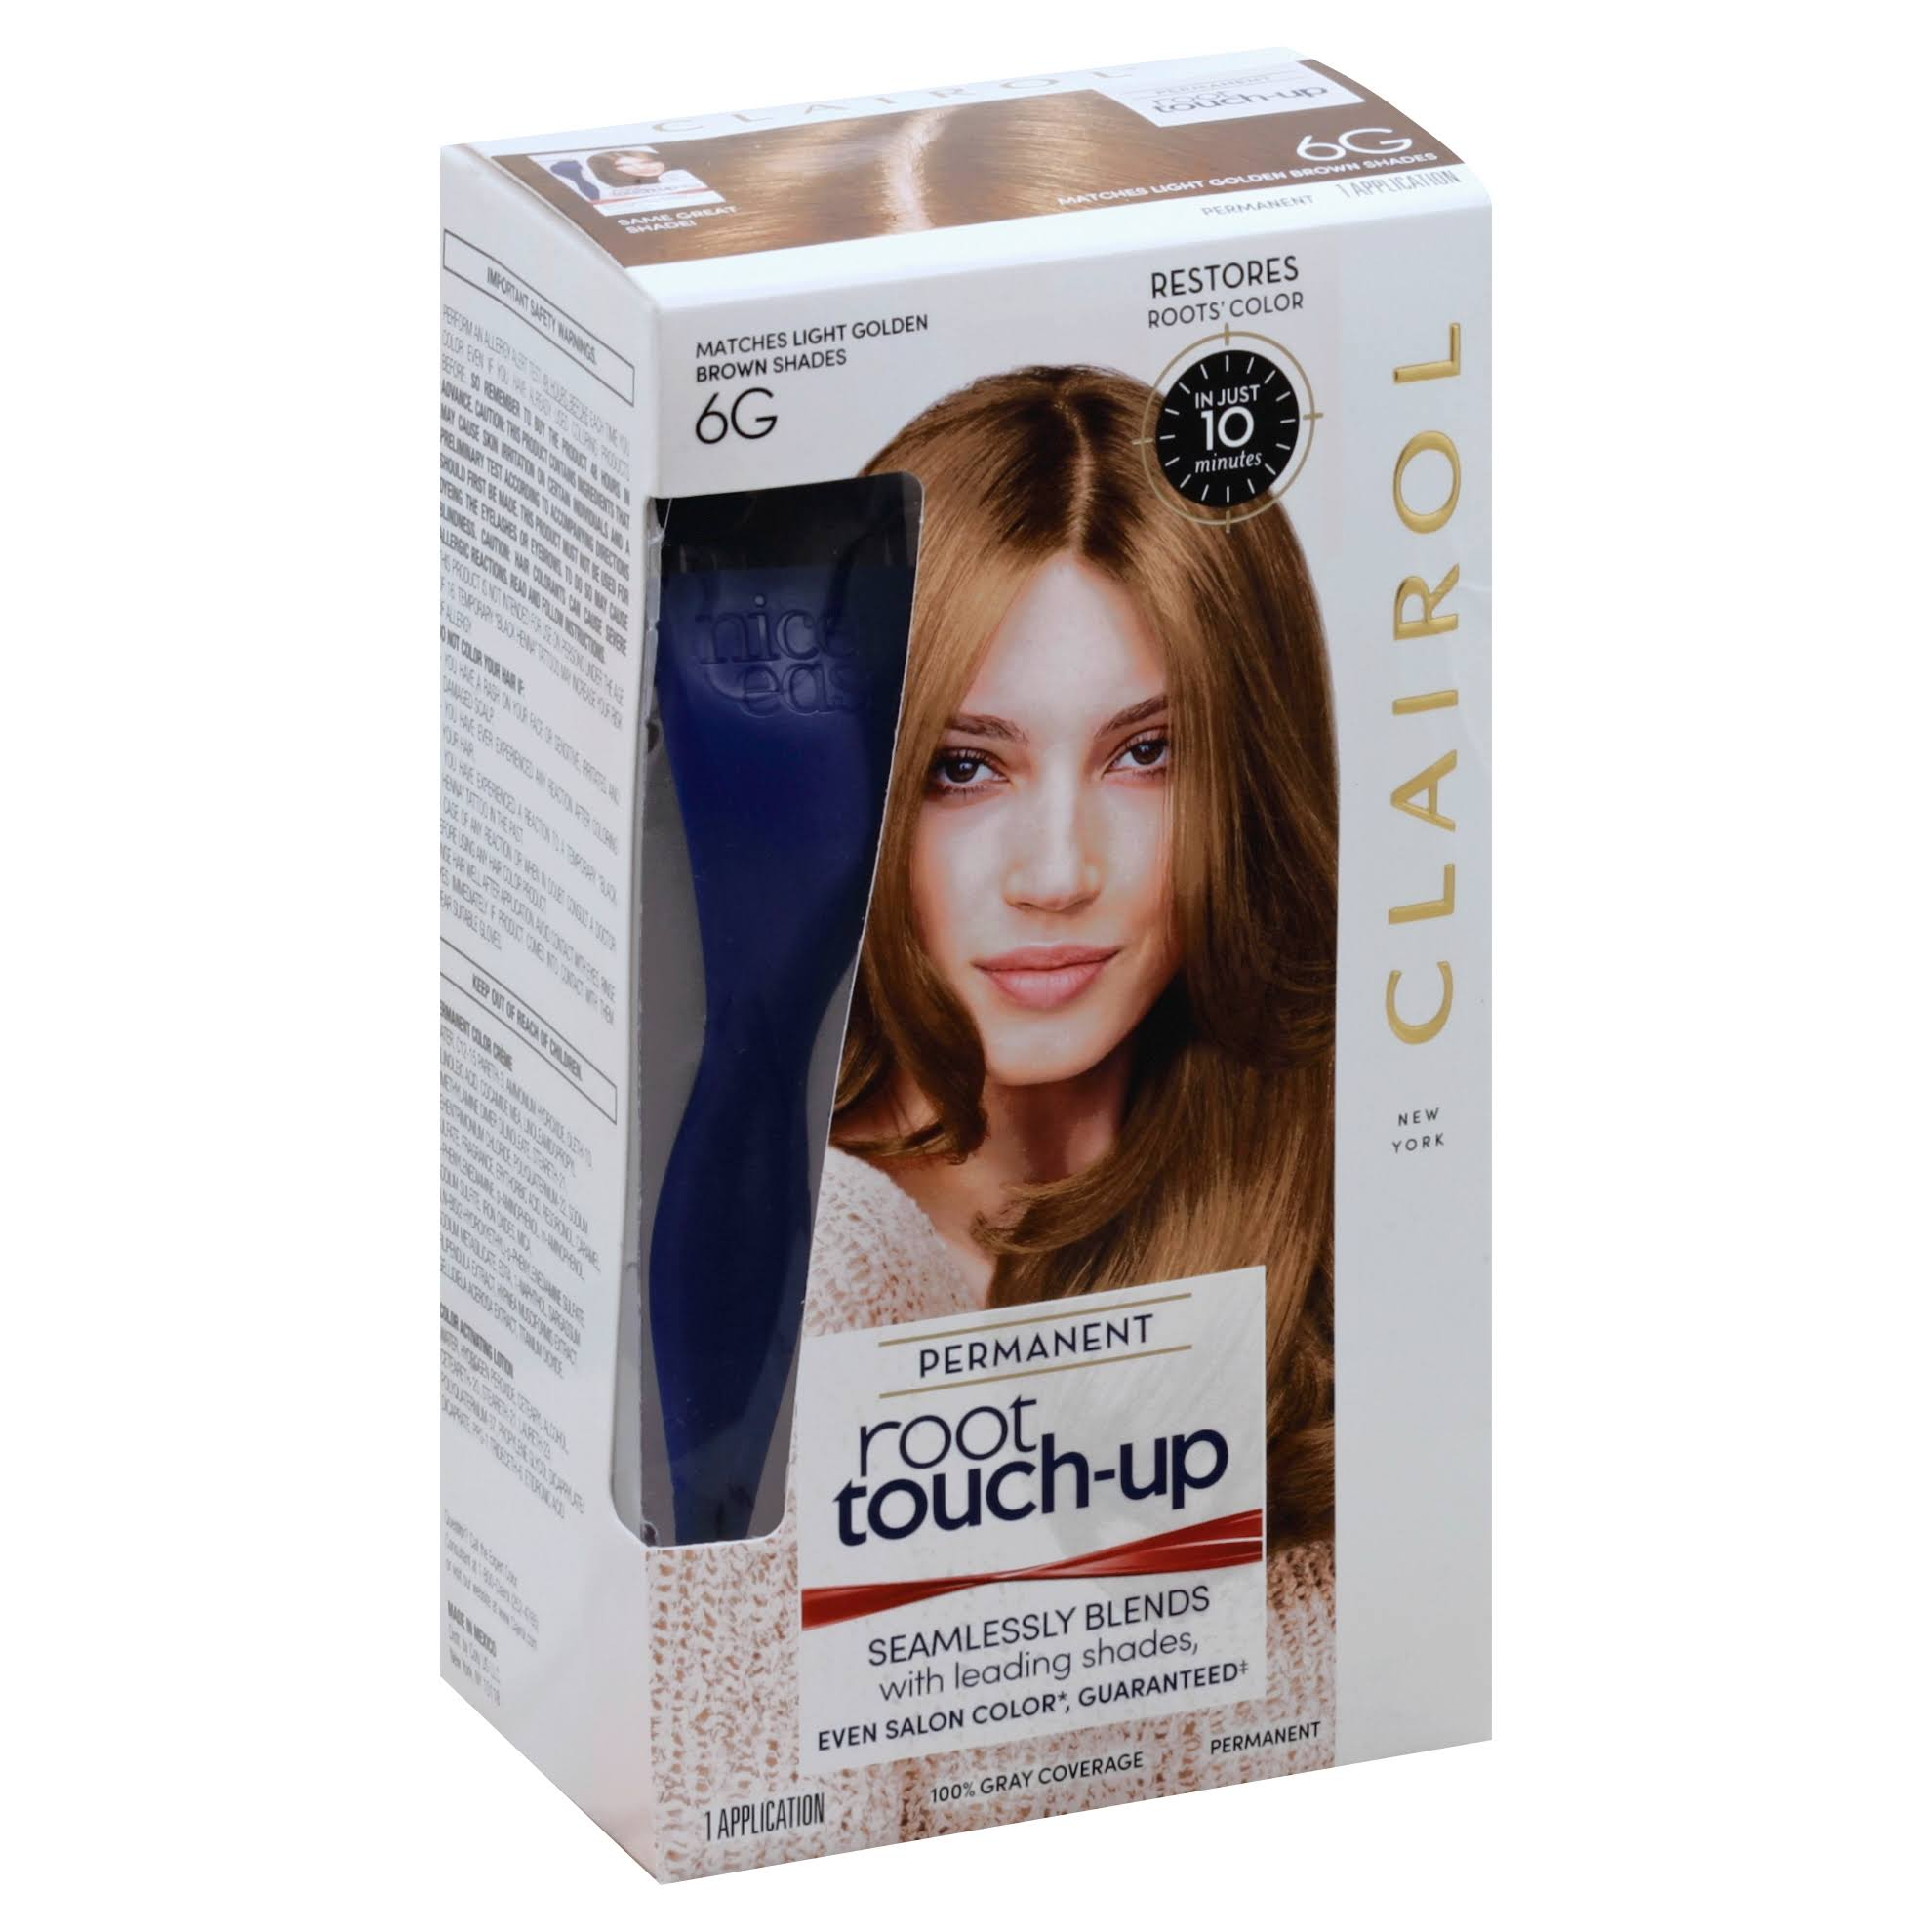 Clairol Nice 'n Easy Root Touch-Up, 6G Light Golden Brown